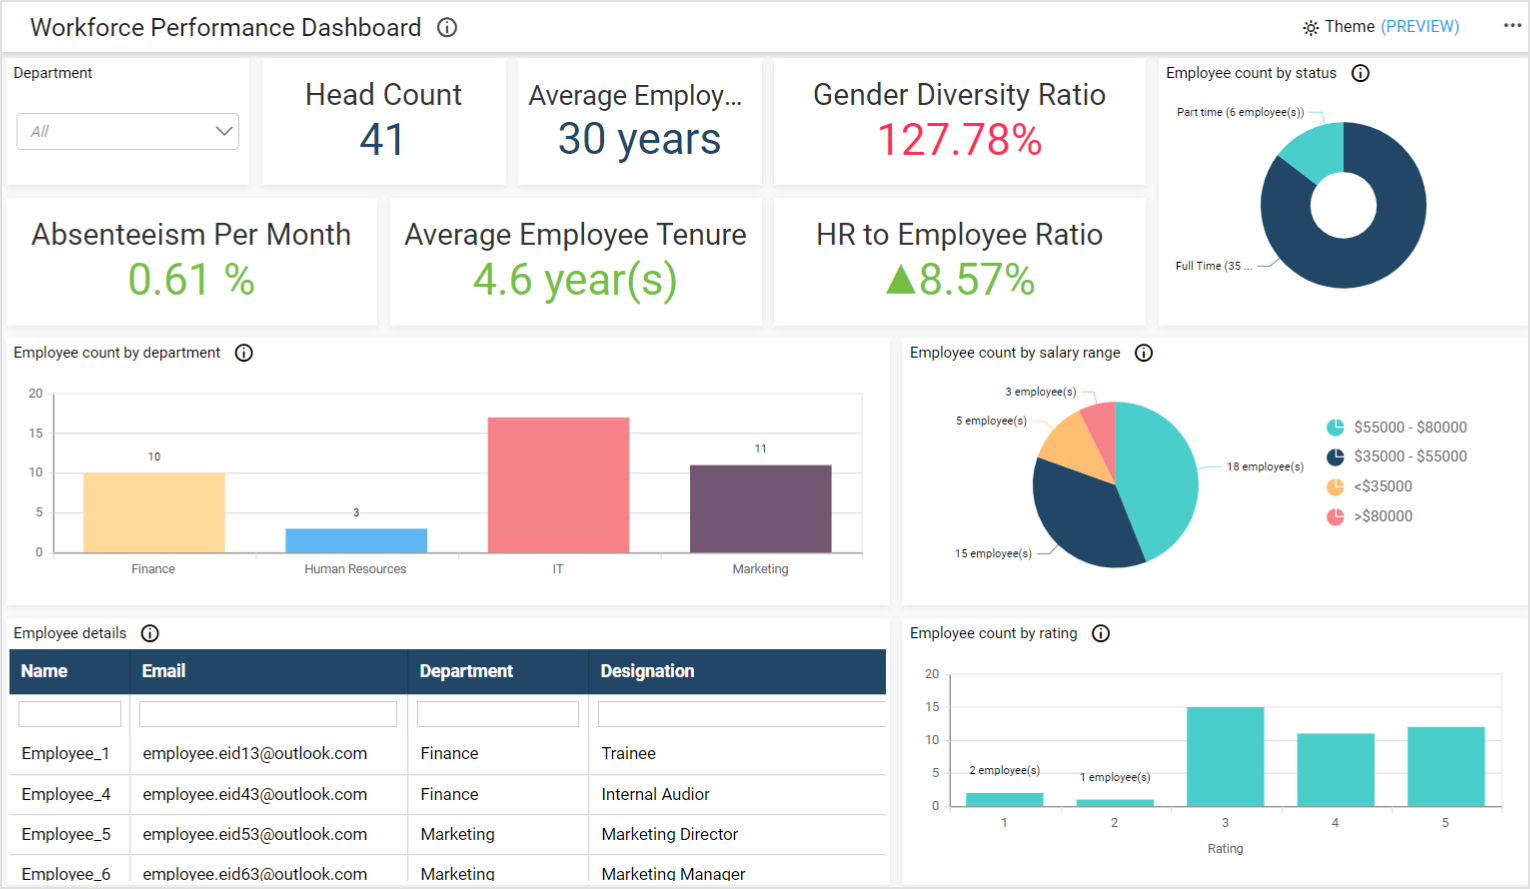 Workforce Performance Dashboard for Manager2 with Specific Department's Employee Data